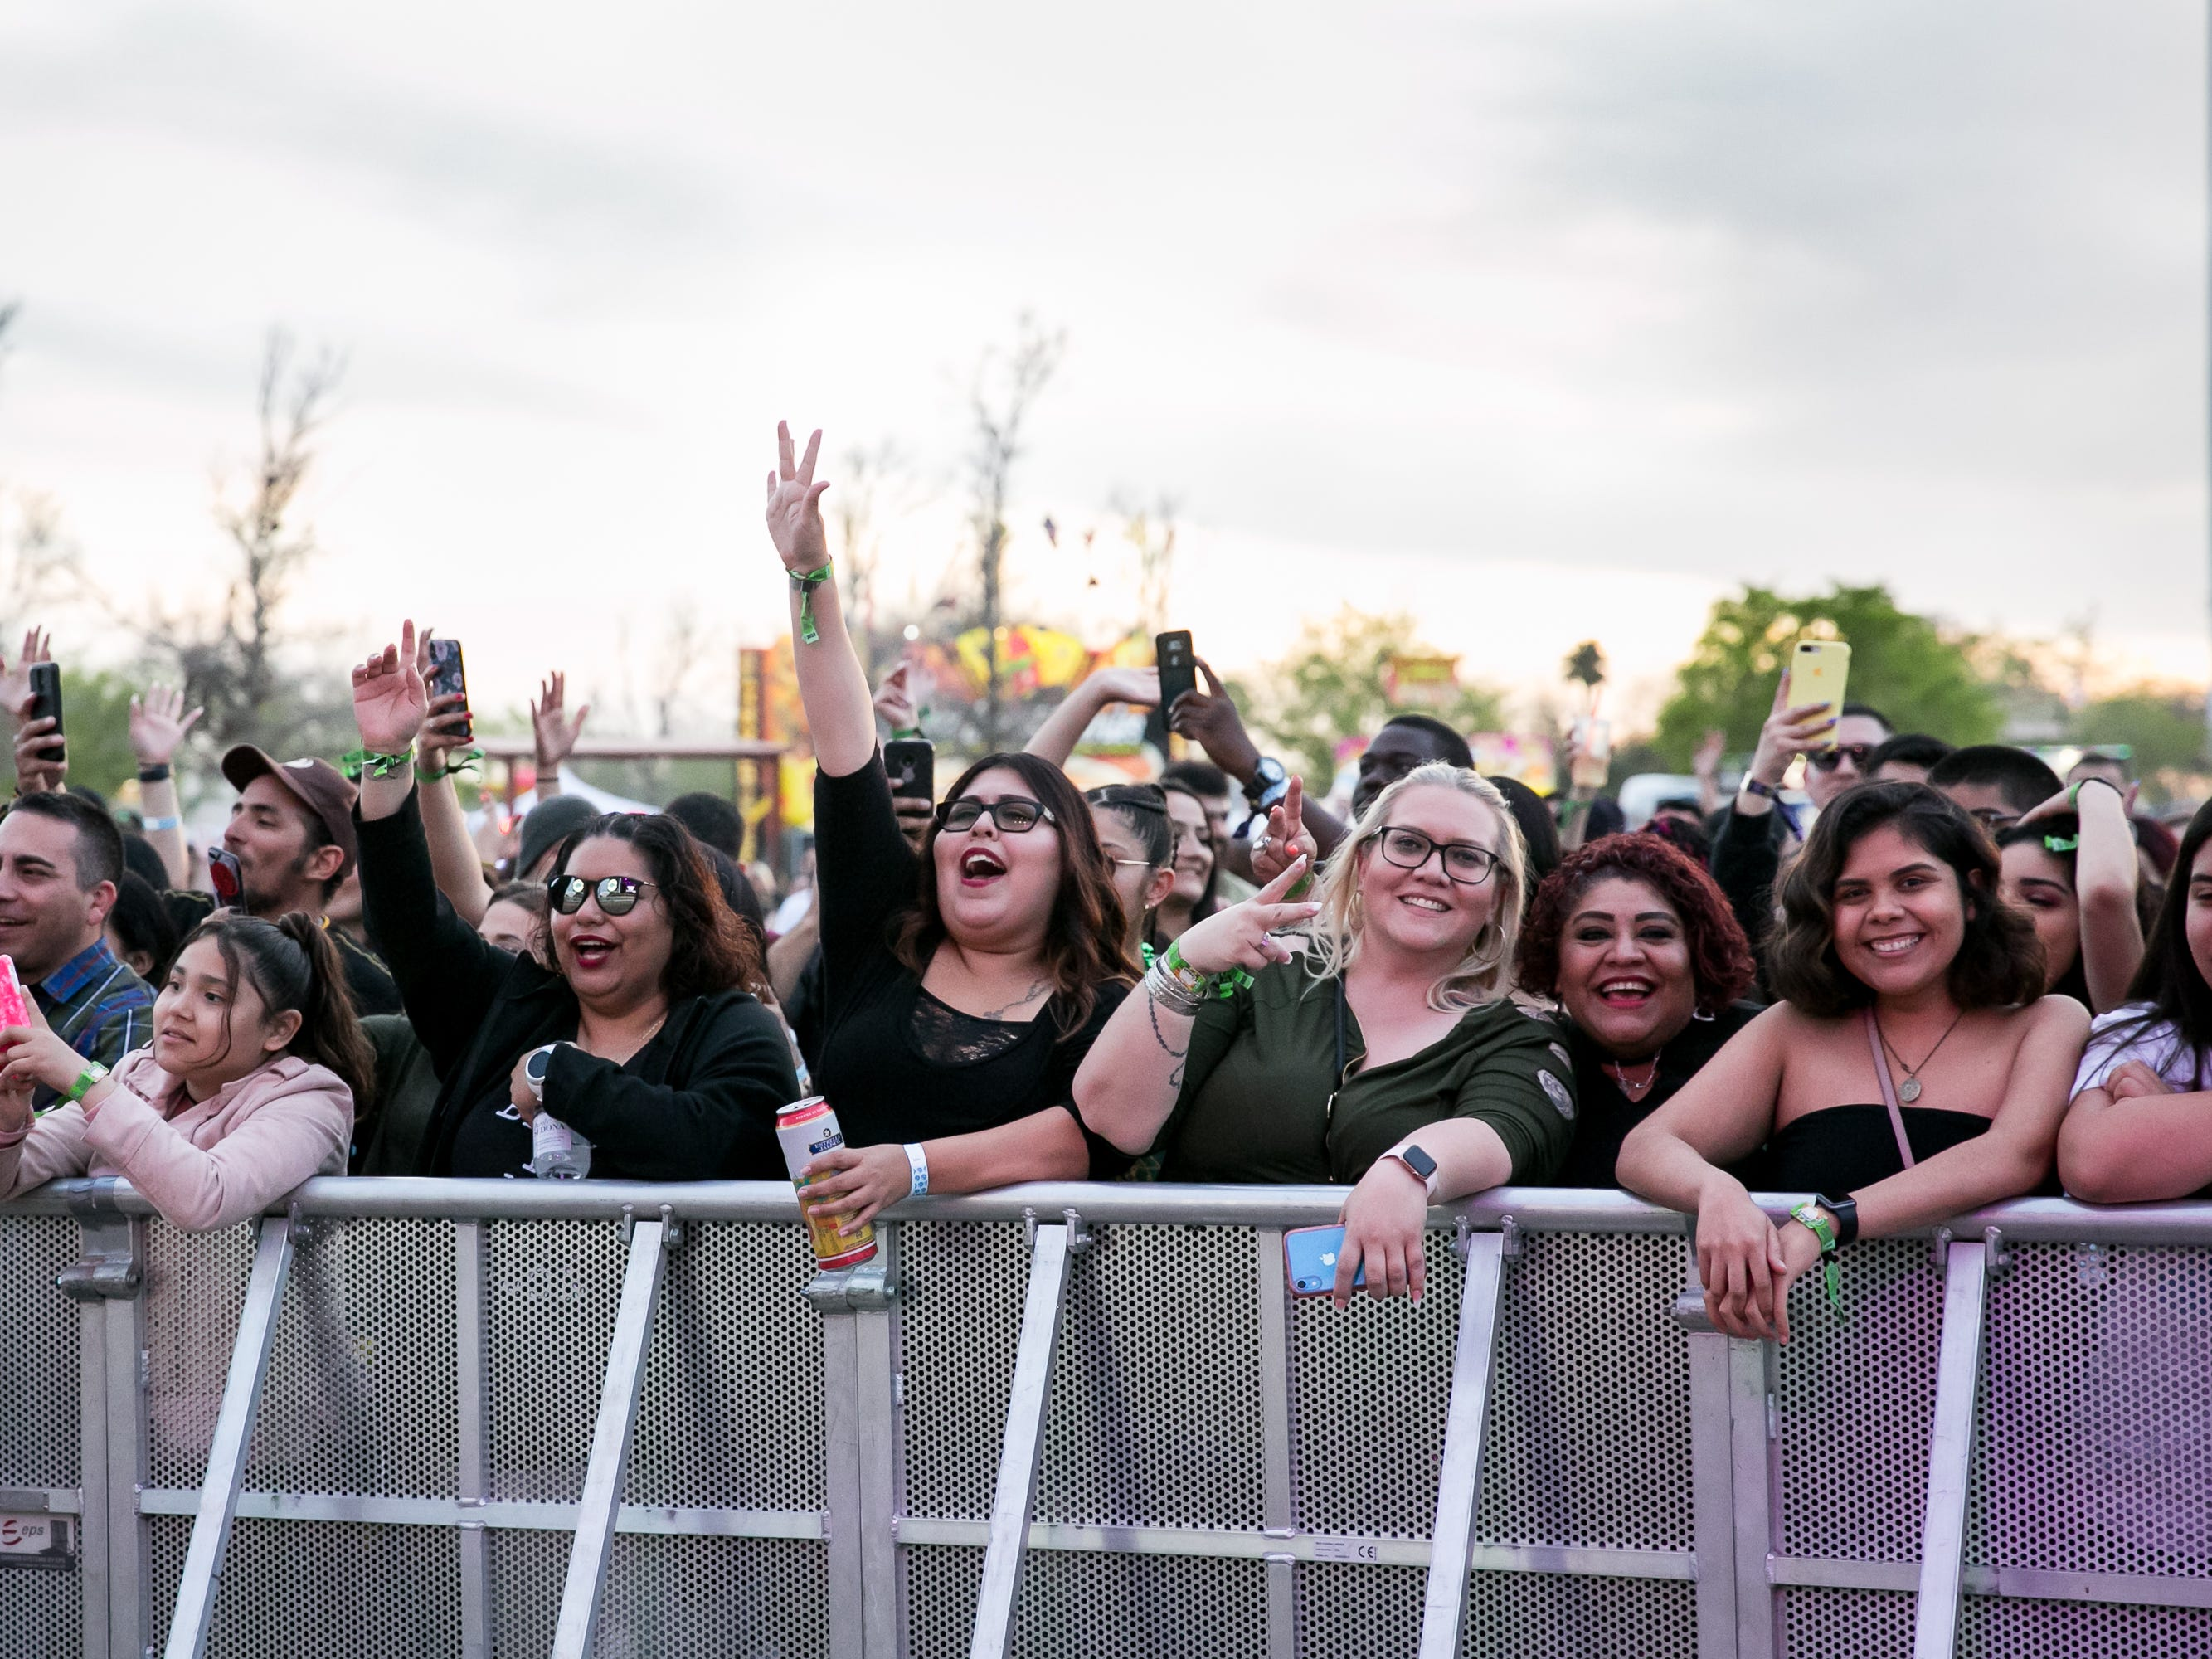 The crowd cheered at Pot of Gold Music Festival at Steele Indian School Park on Friday, March 15, 2019.